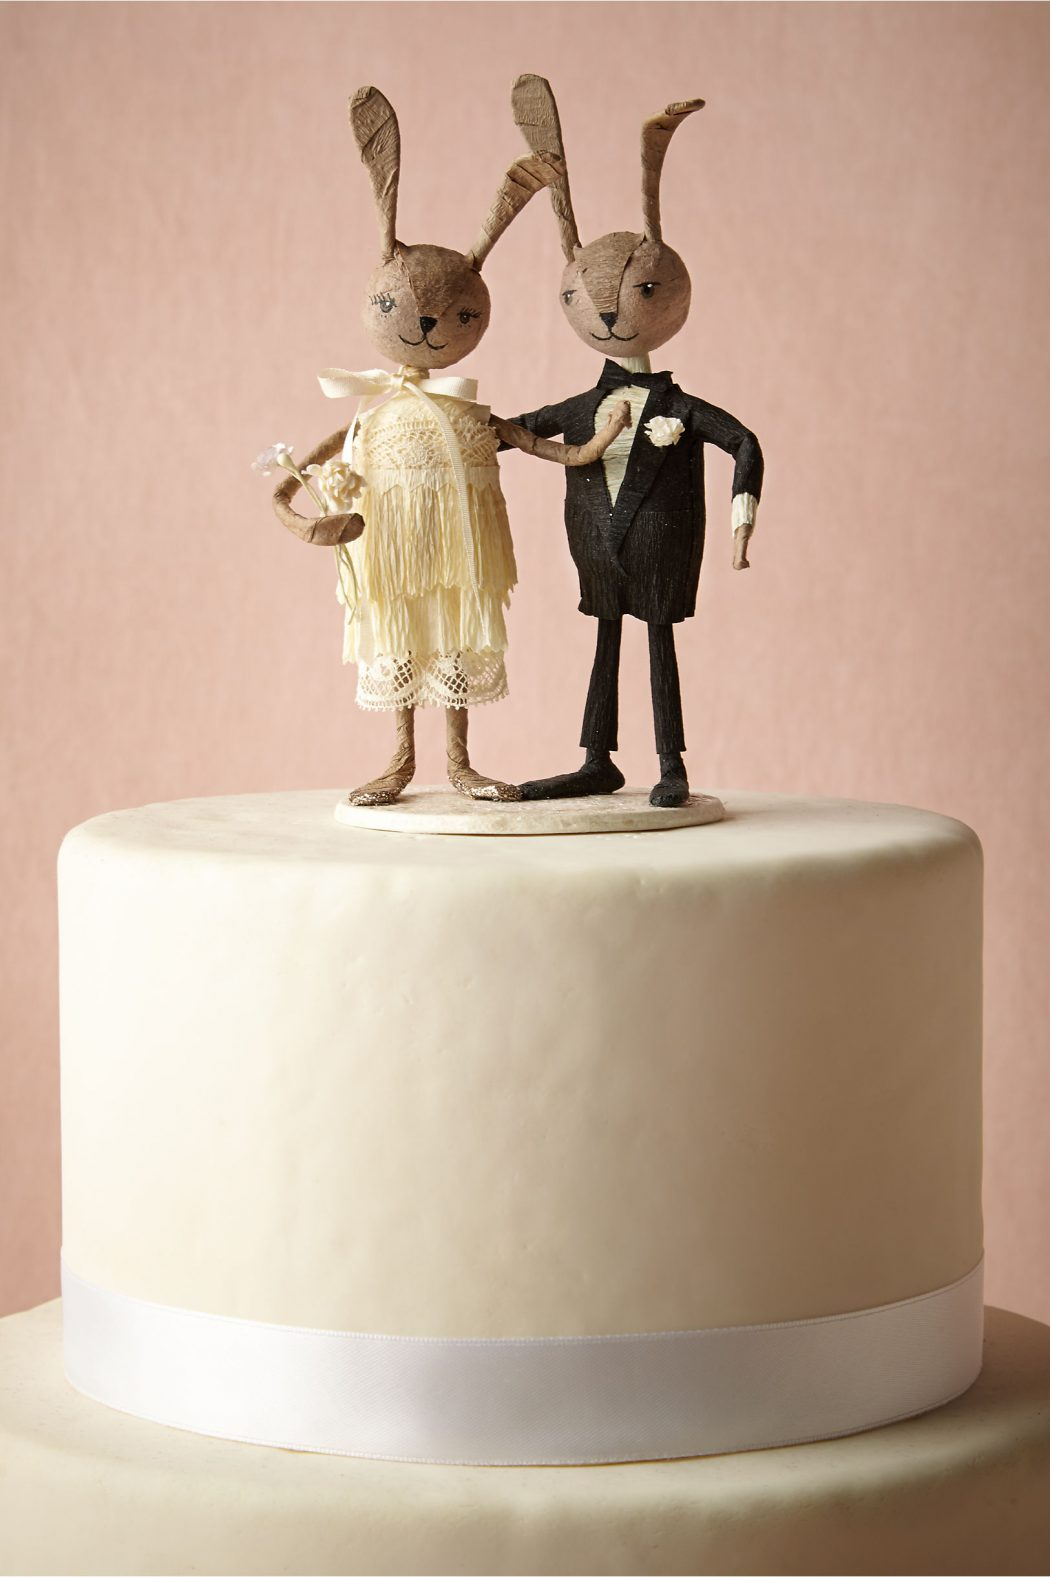 31959166_015_a Top 10 Most Unique and Funny Wedding Cake Toppers 2017